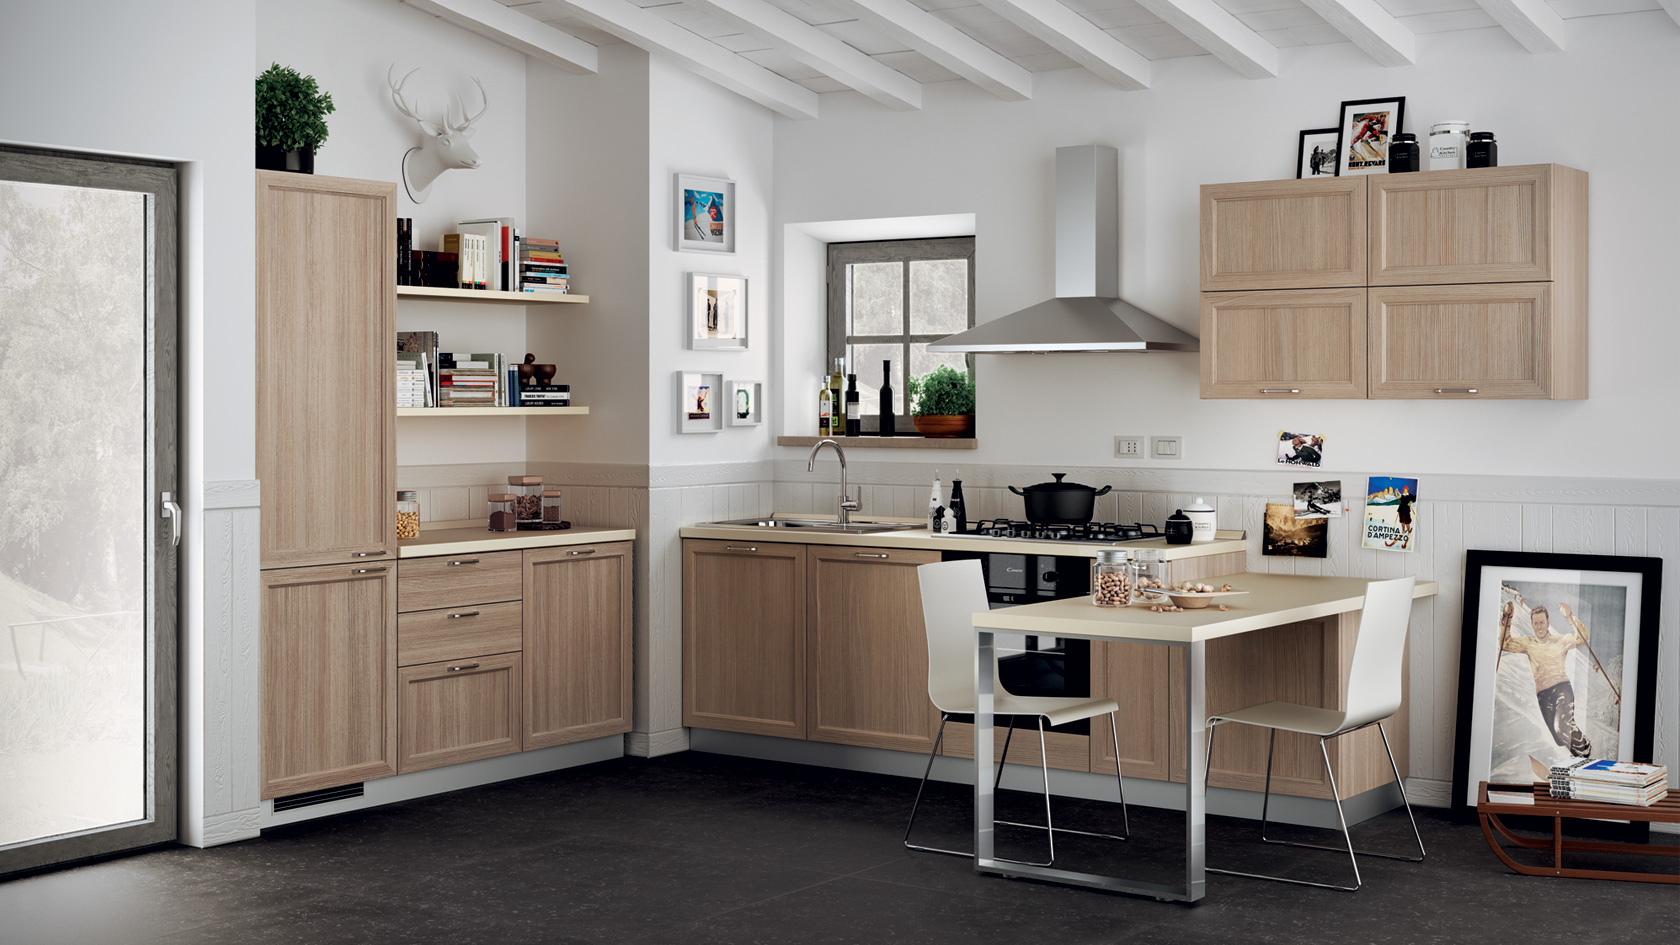 Highland for Scavolini cabinets